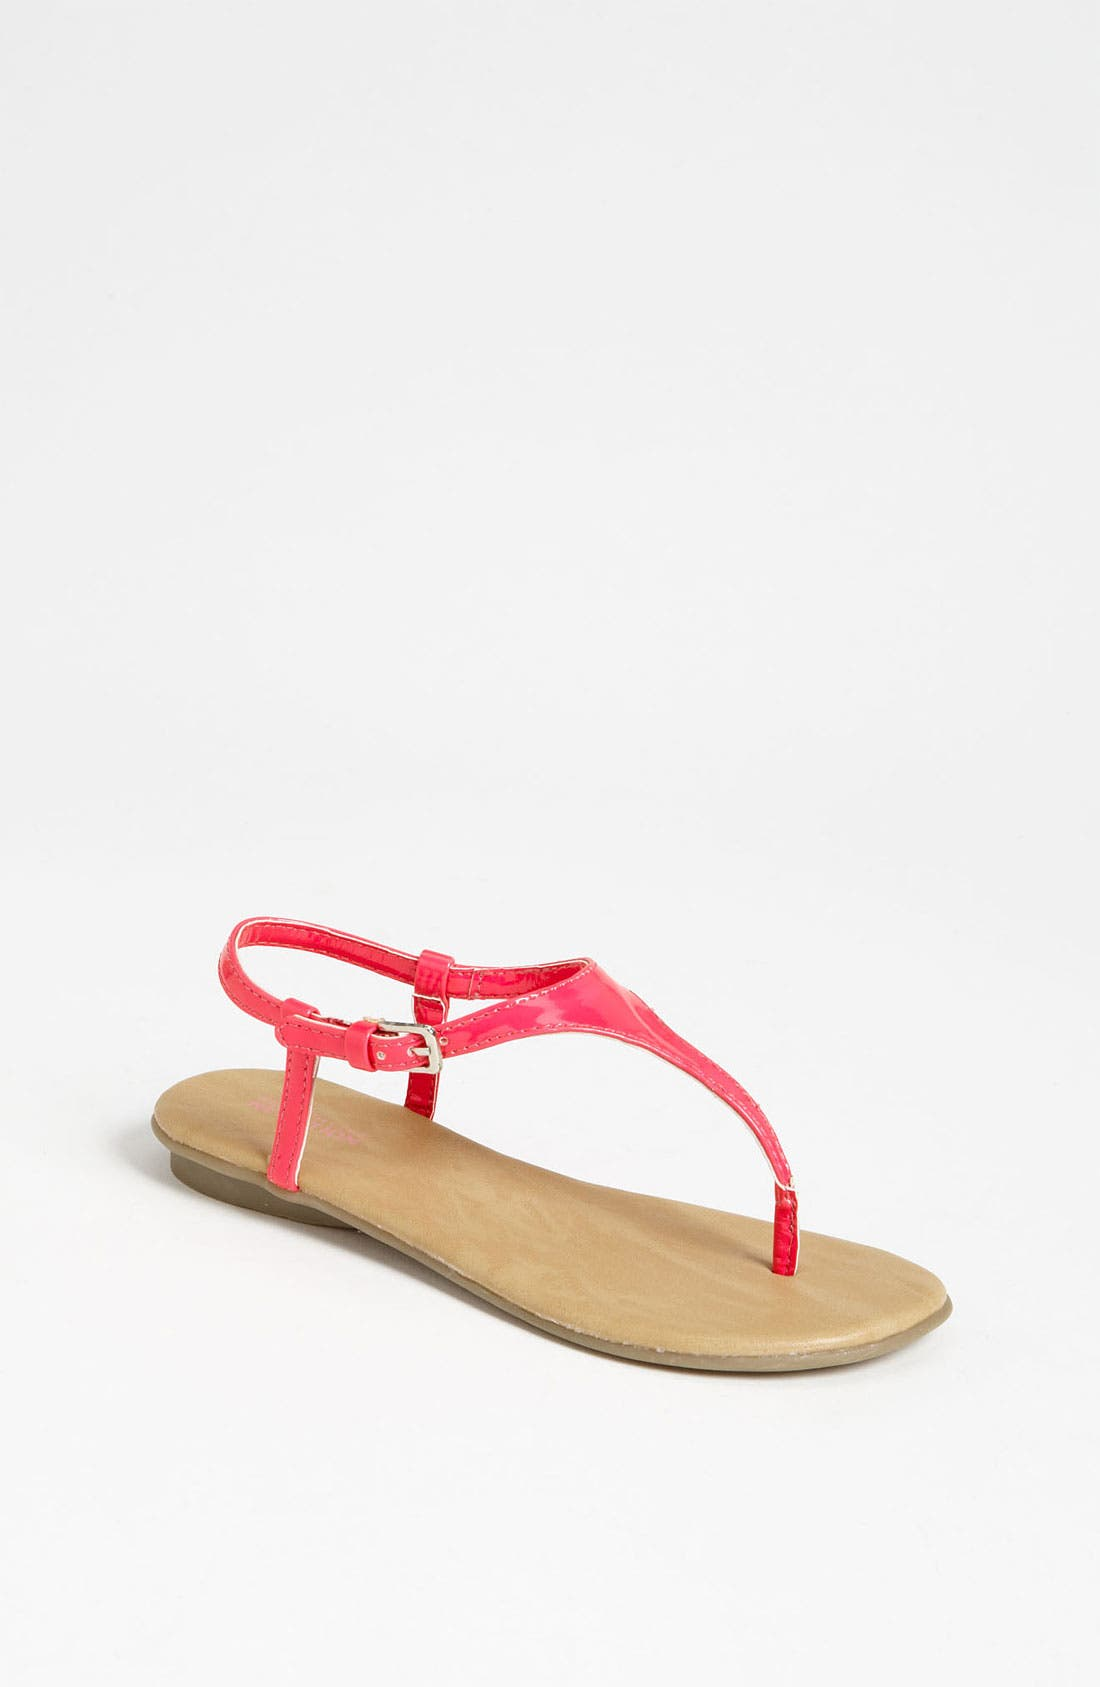 Alternate Image 1 Selected - Kenneth Cole Reaction 'Sunny Hunny' Sandal (Toddler, Little Kid & Big Kid)